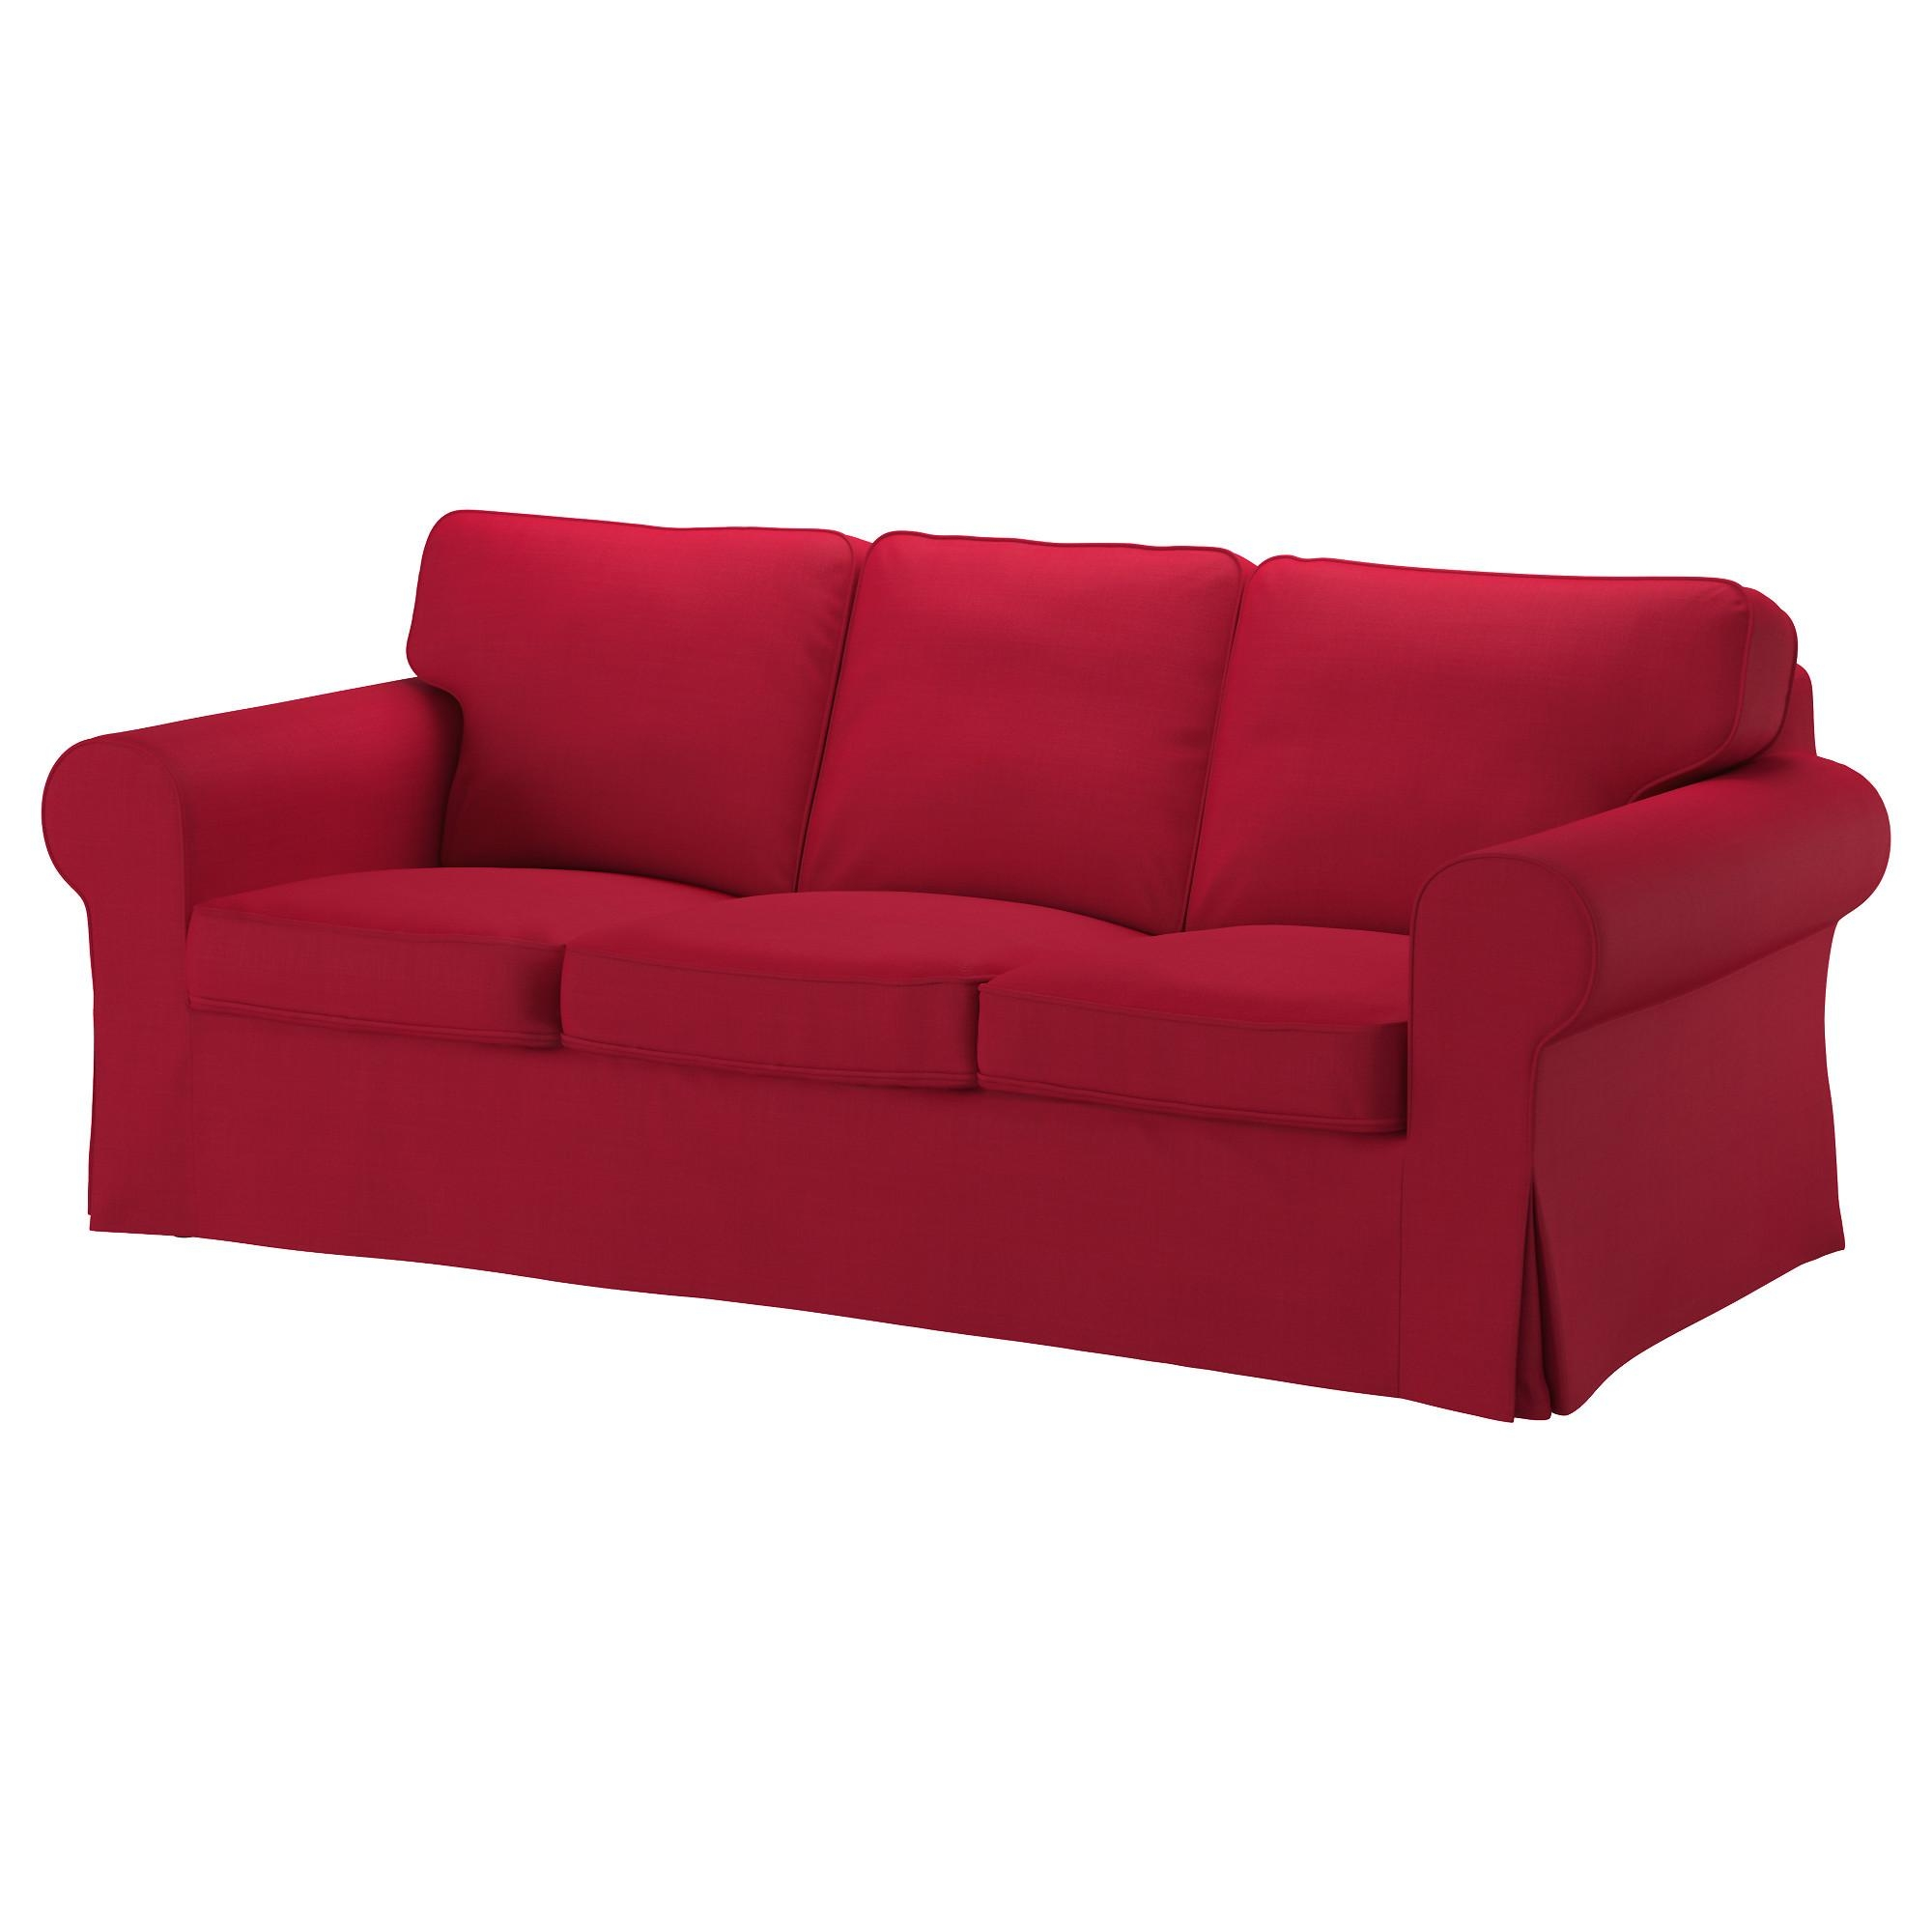 Furniture: Ektorp Sofa Bed | Ektorp Sofa | Ikea Ektorp Corner Sofa Throughout Cheap Corner Sofa Beds (Image 9 of 20)